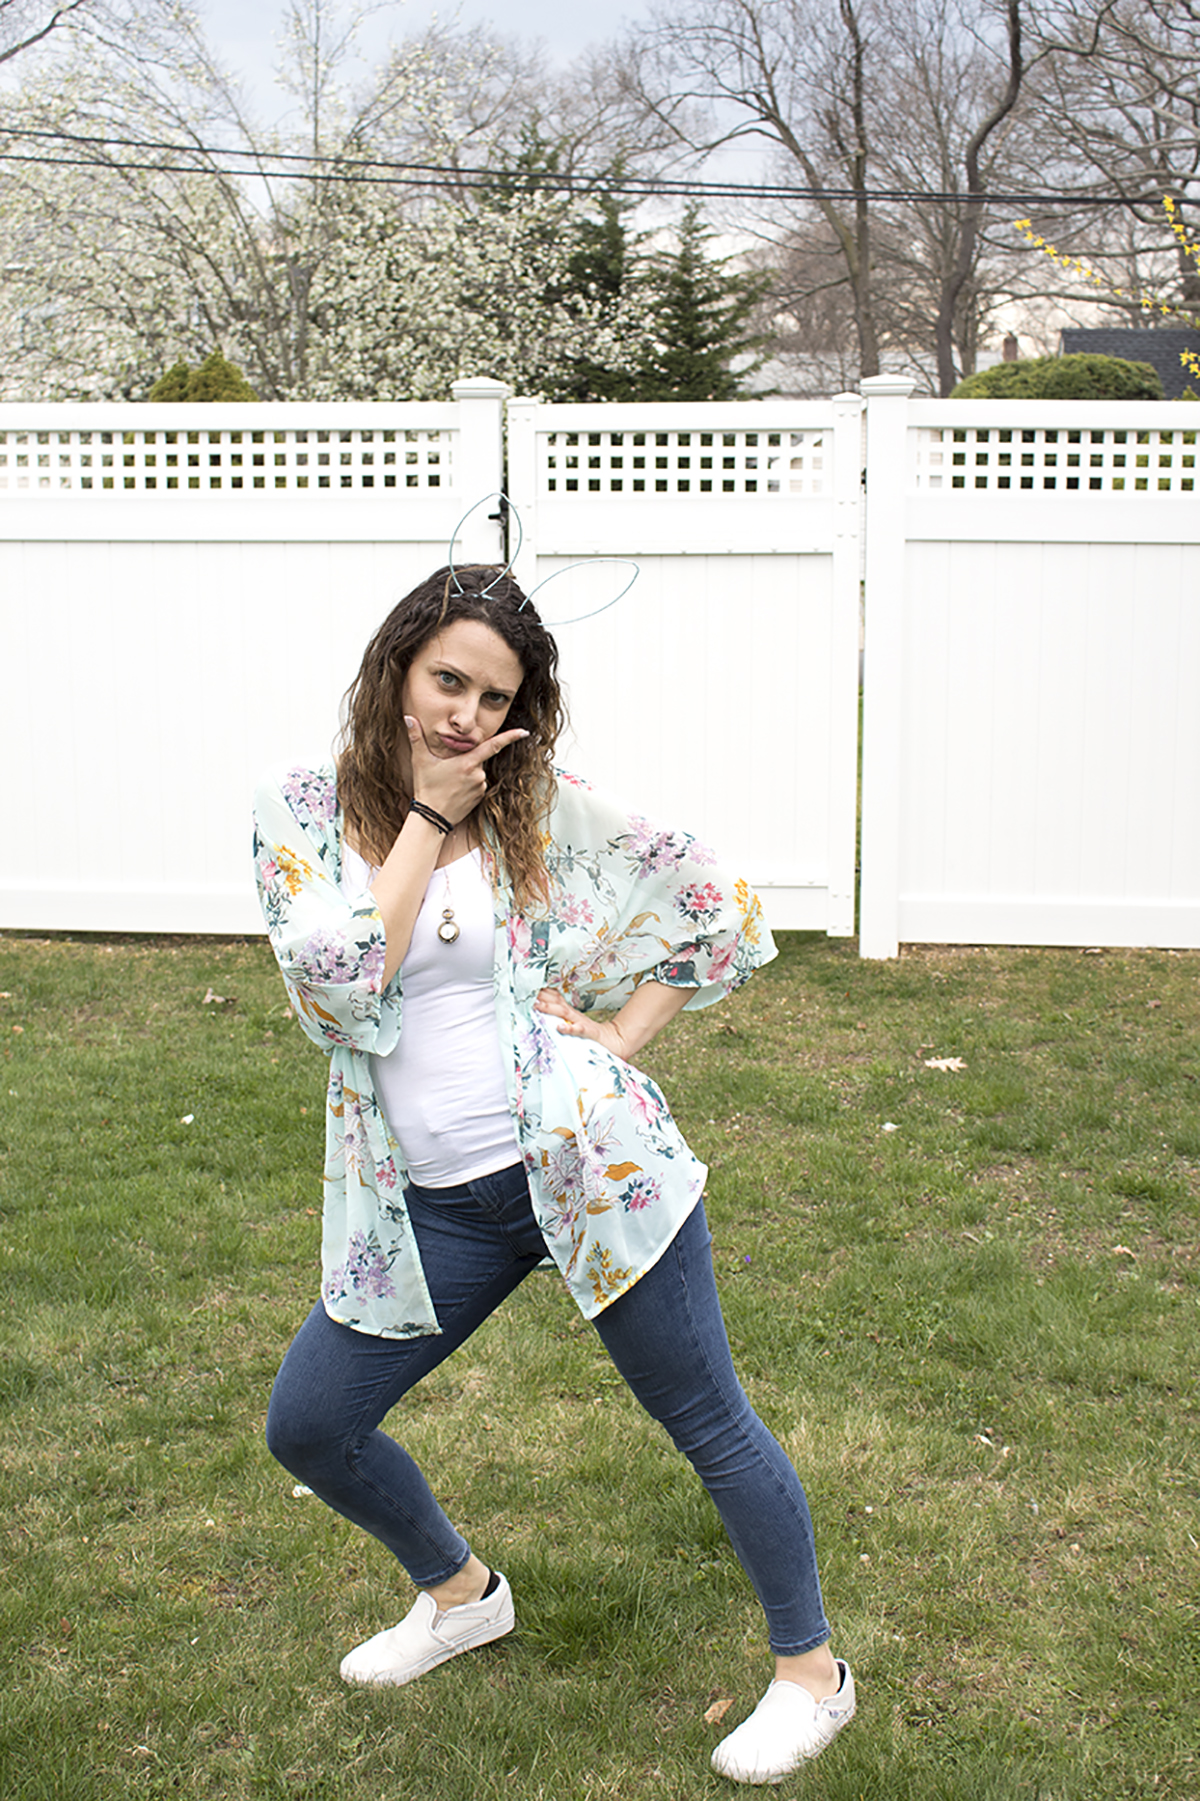 Dressing cute for spring doesn't have to mean being uncomfortable! We're sharing our tips for finding your new spring look, including colorful clothes, trying new trends, and, most importantly, shoes! Click for the full post.